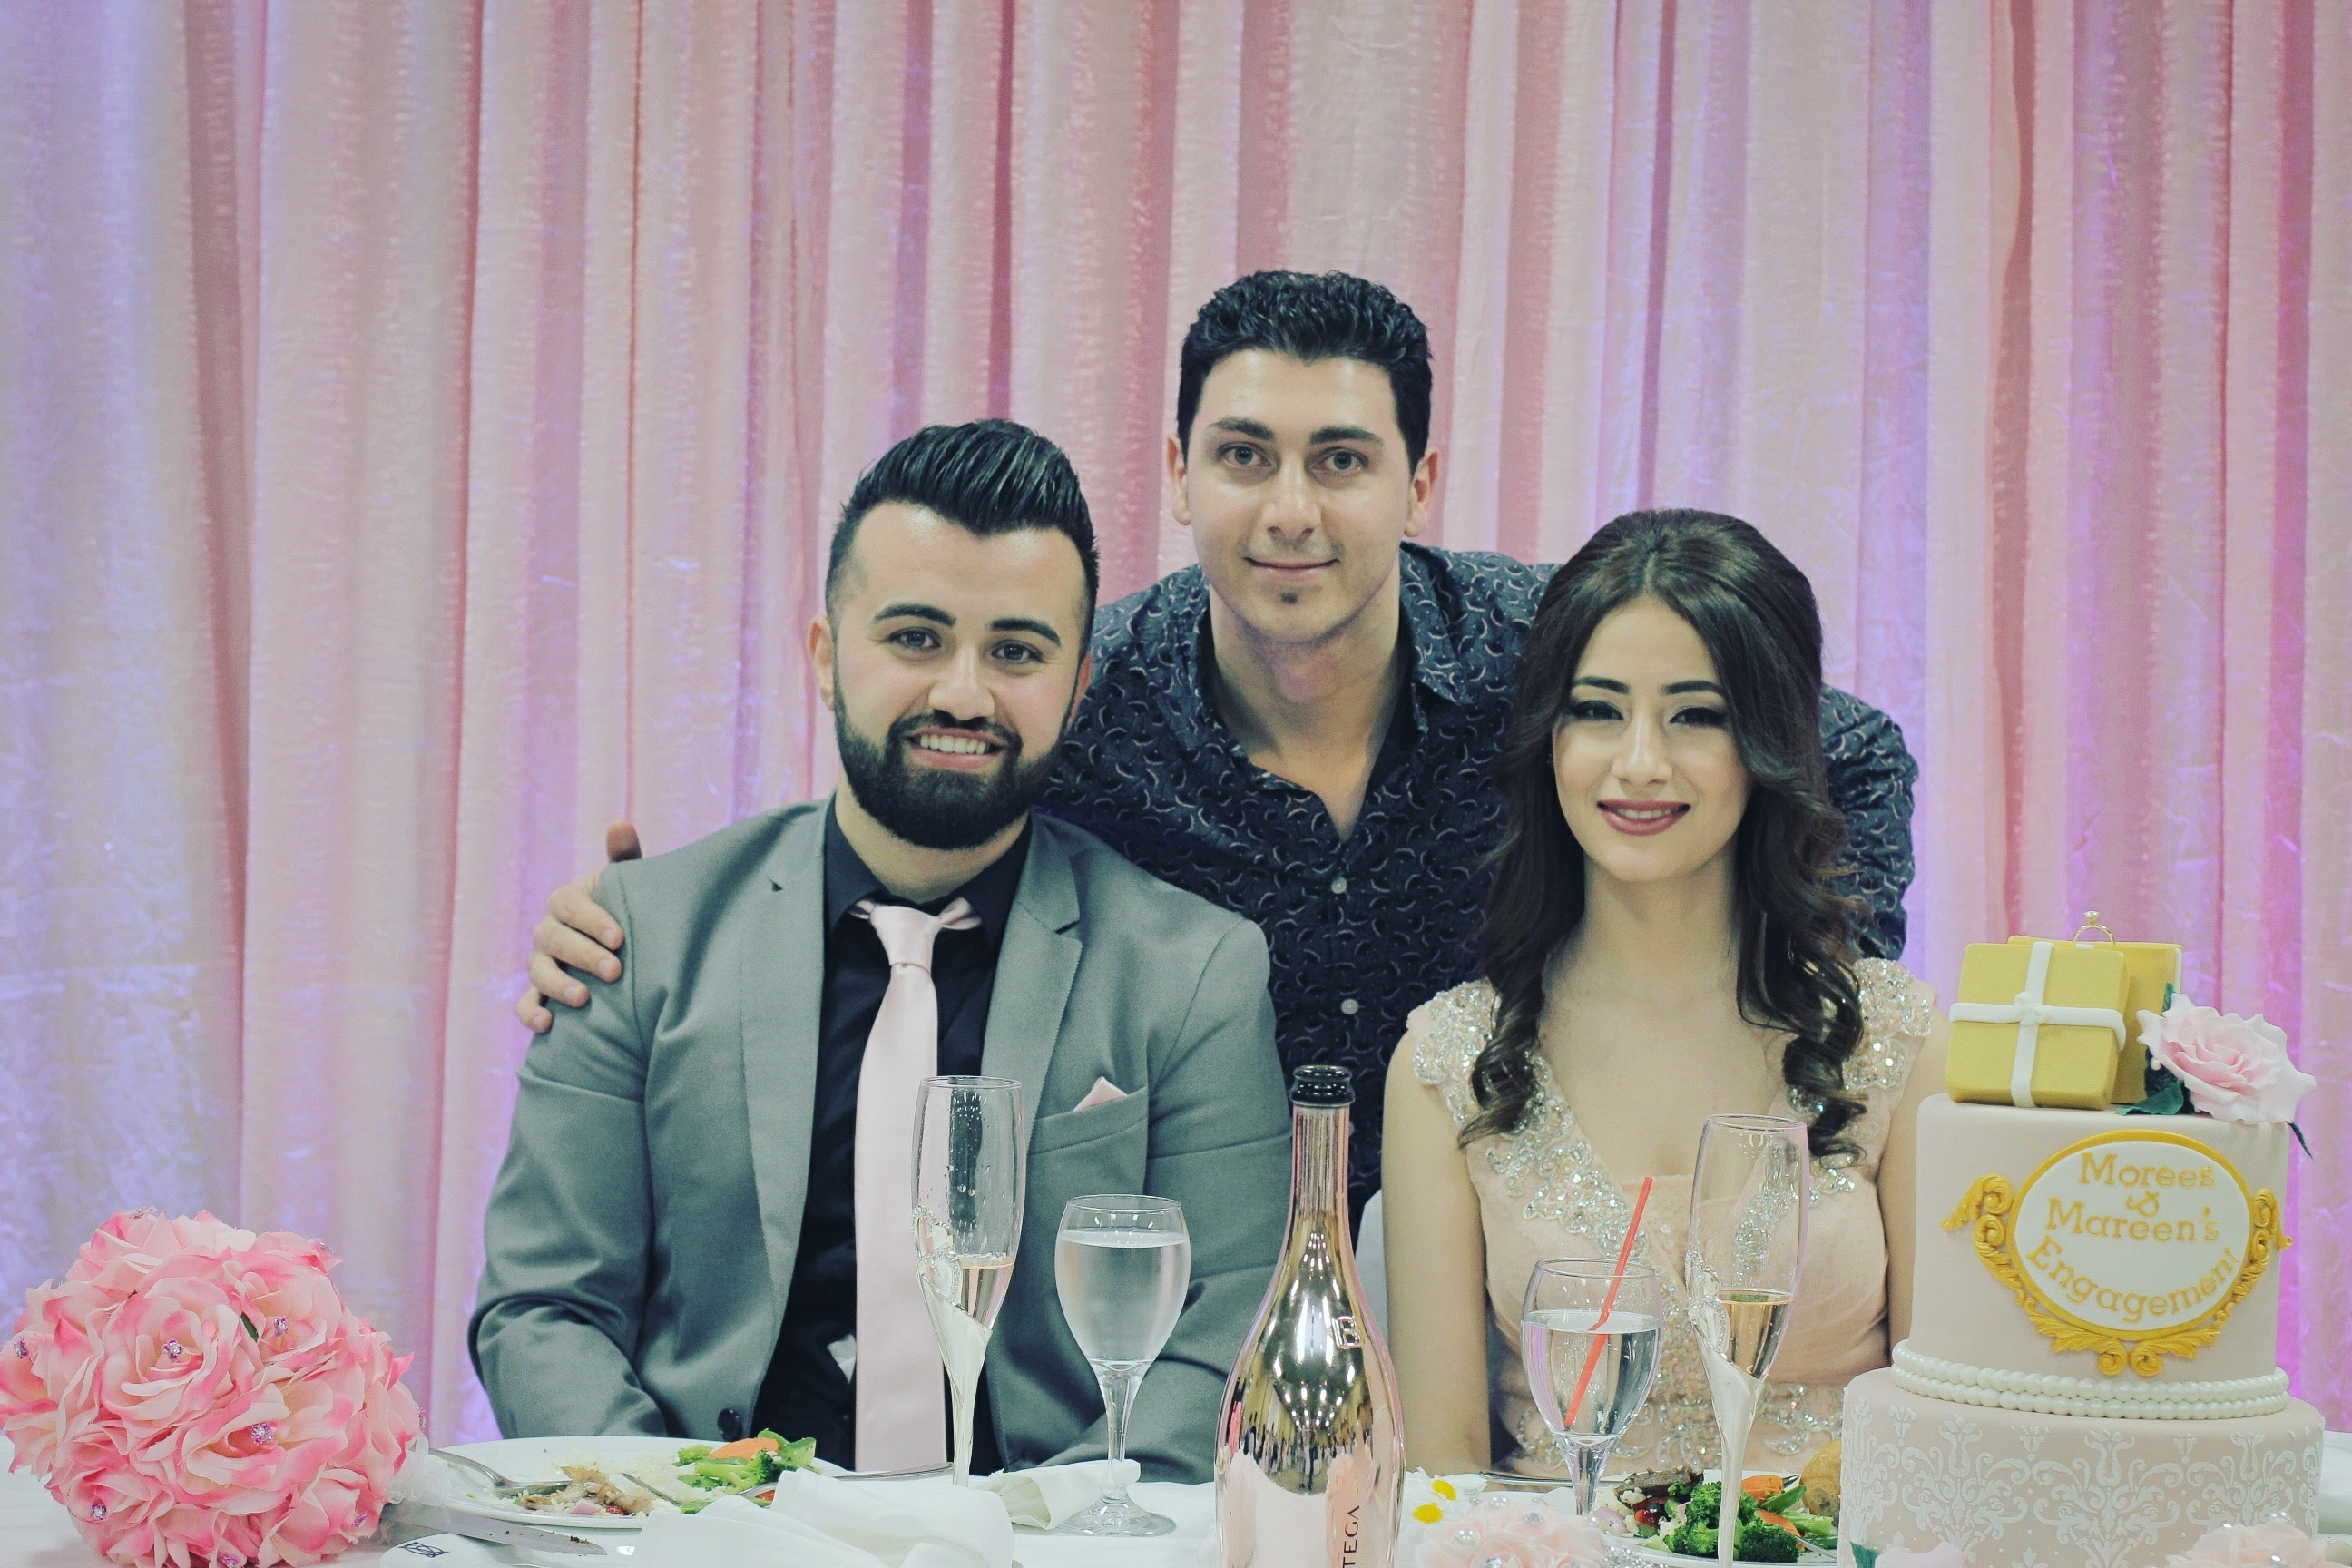 Congratulations Morees & Mareen on your engagement